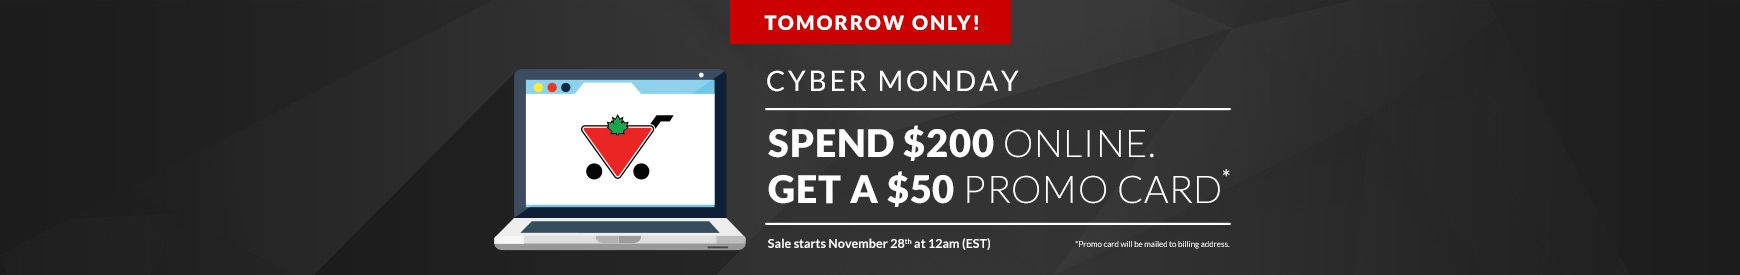 Canadian Tire - Online] Canadian Tire Cyber Monday (Spend $200 Get